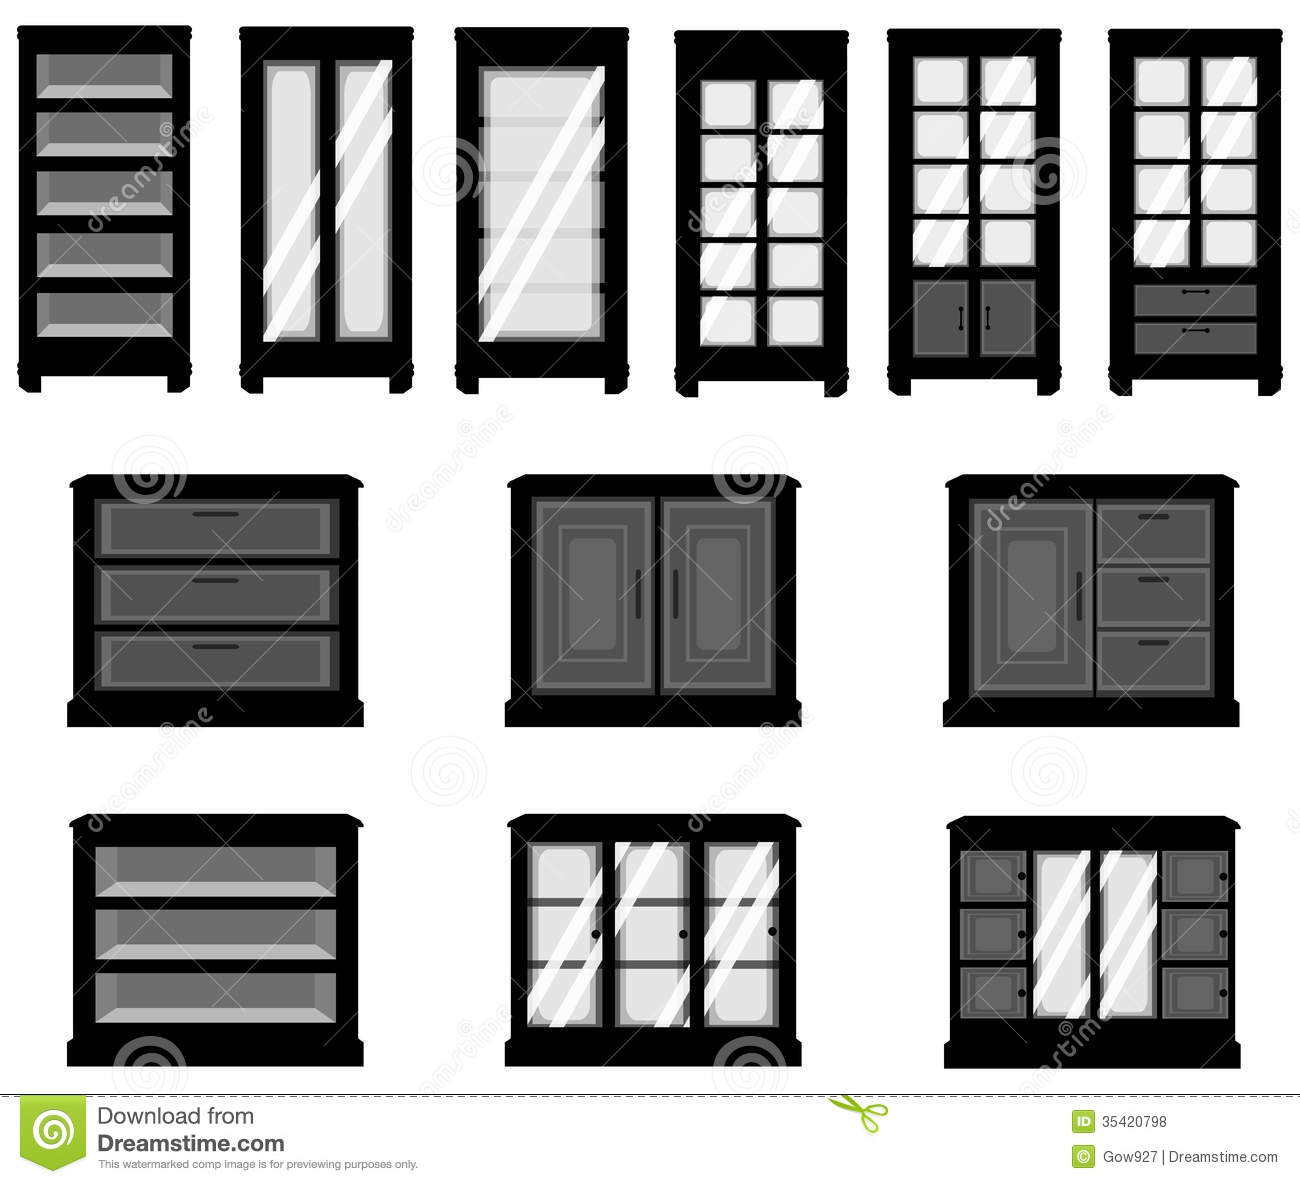 Royalty Free Stock Photos Sets Silhouette Cabinets Create Vector Image35420798 on Antique White Furniture Living Room Set